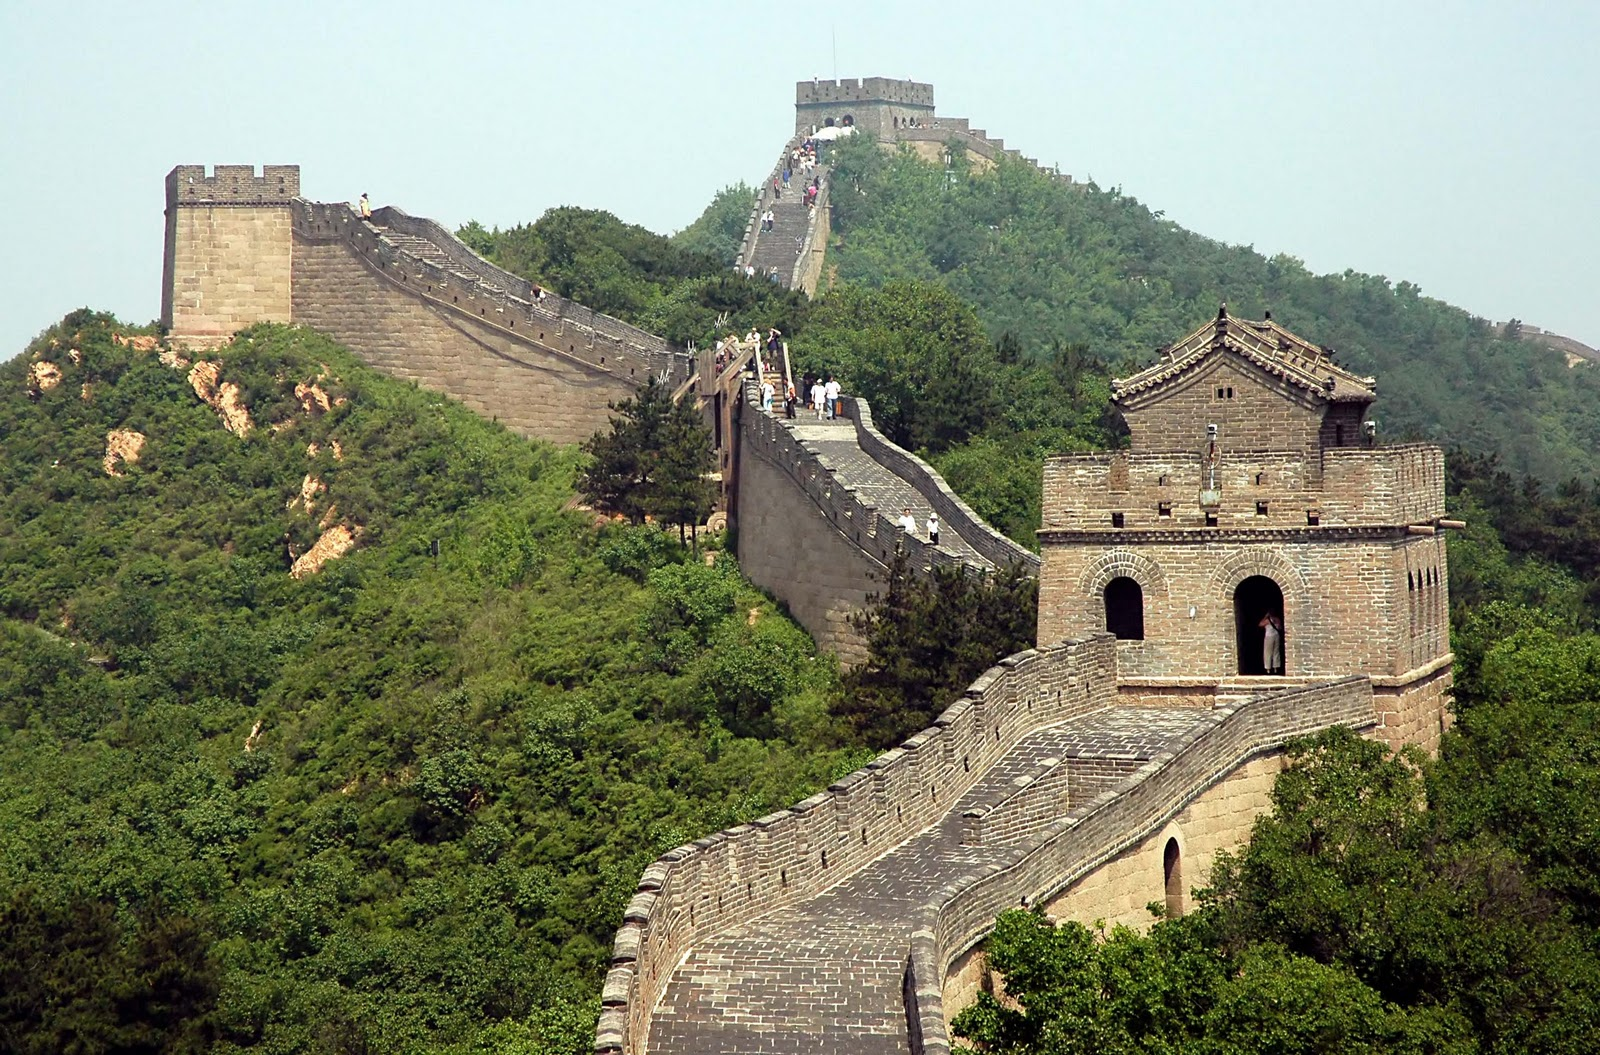 china places place most wall chinese amazing pretty sights cool beijing famous spots very go historical xian country